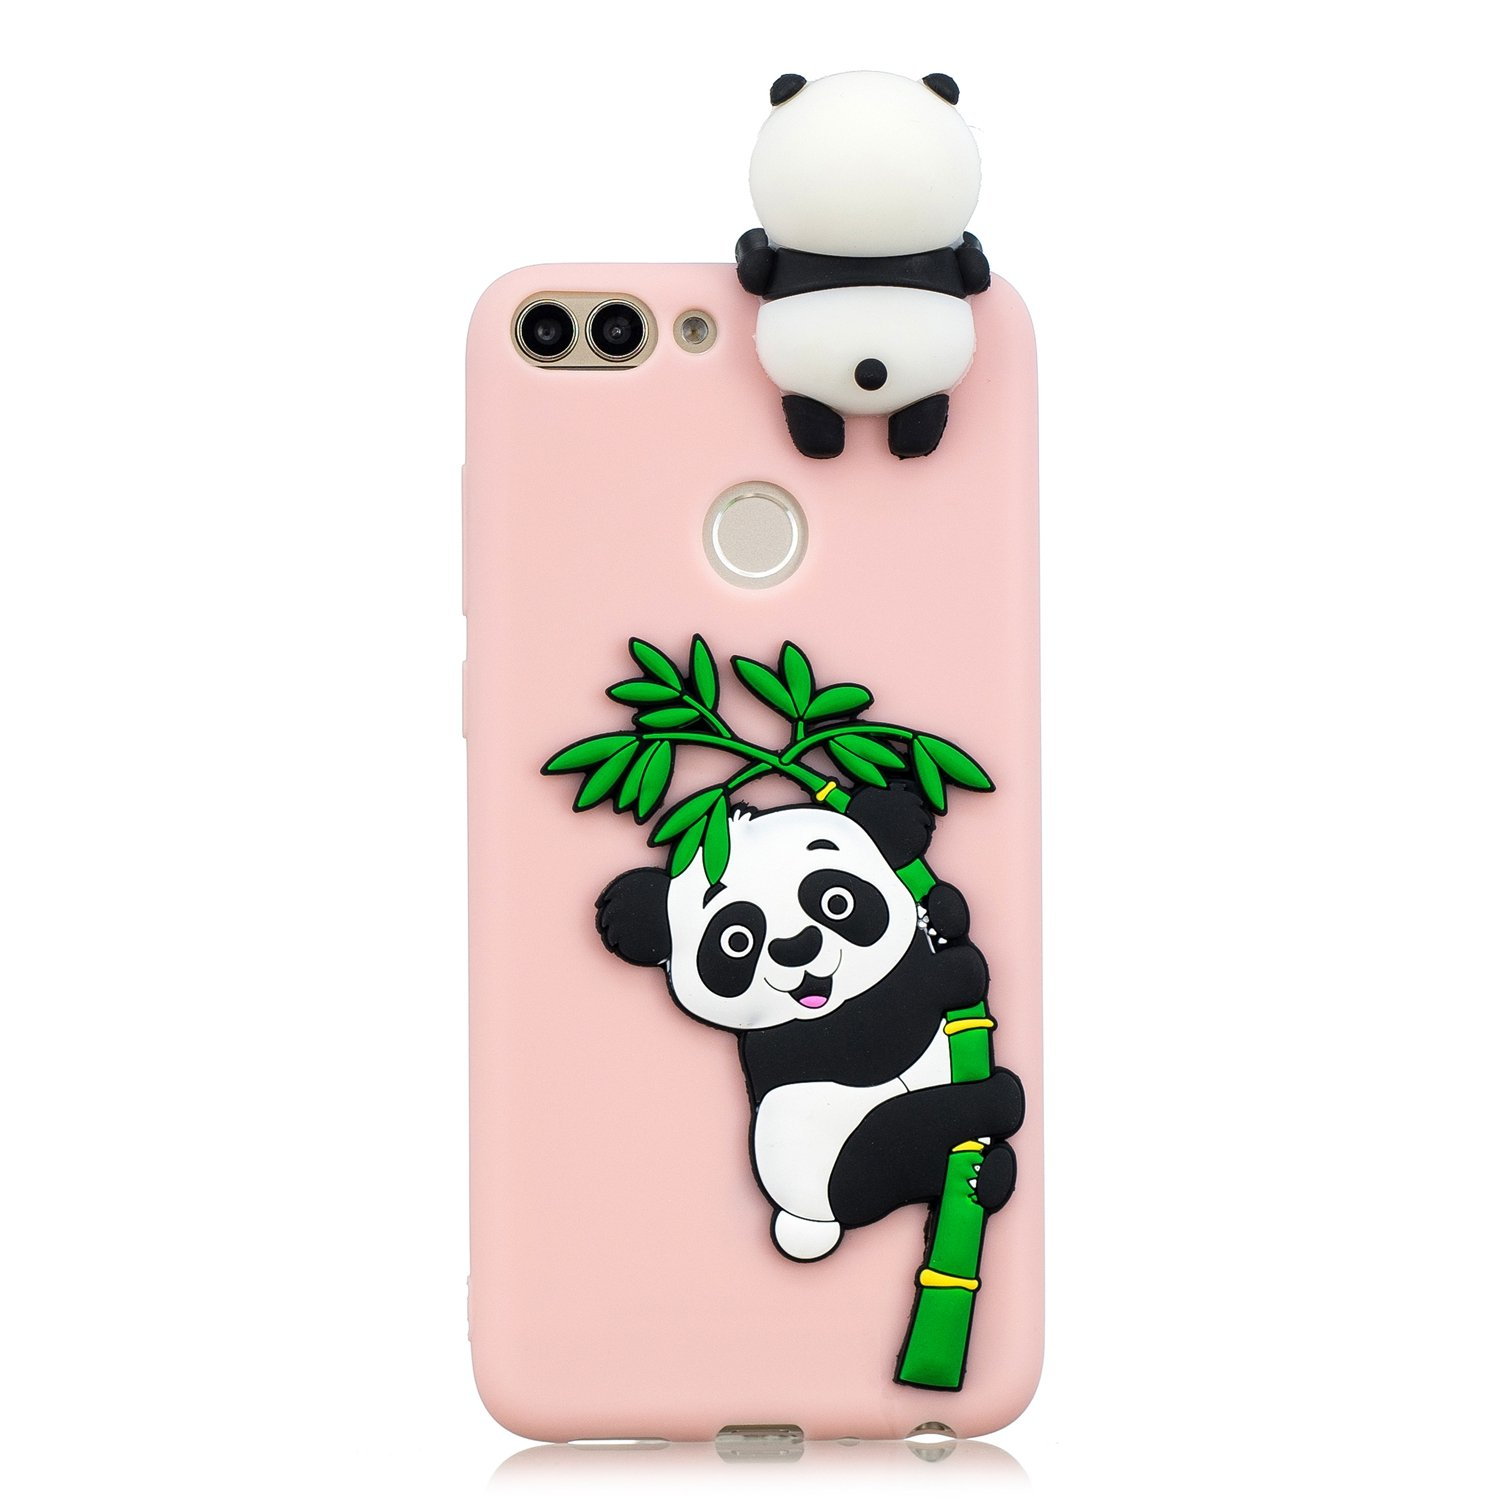 FNBK Phone Case for Huawei P Smart, Cute 3D Cartoon White Panda Cover Christmas Gift for Kids Ultra Thin Slim Fit Plastic Hard PC Transparent Clear Protective Back Bumper Phone Cover